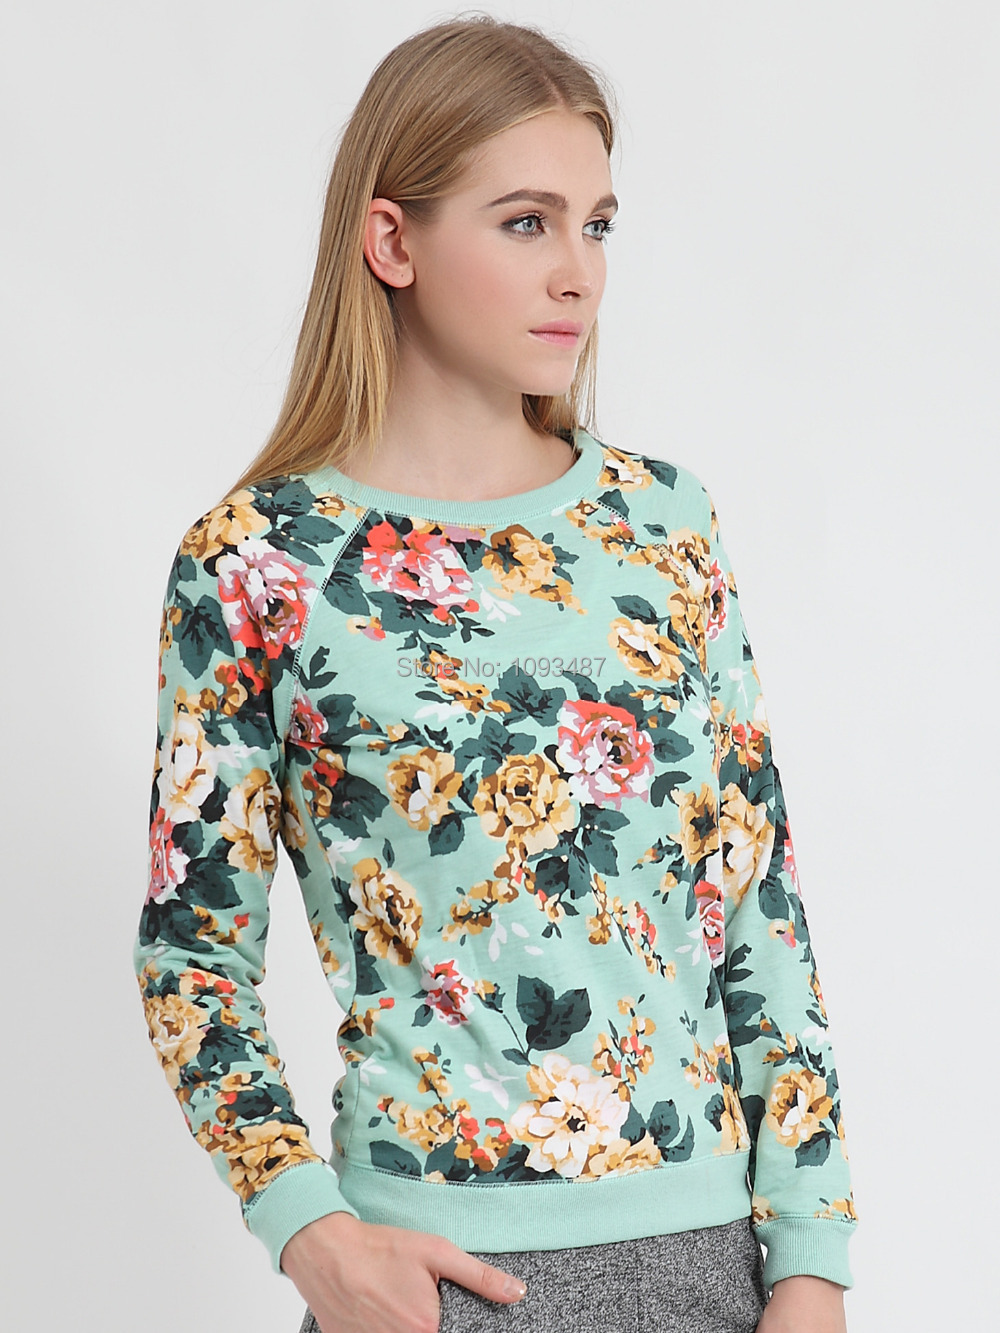 Harbeth 2015New Spring autumn women sweatshirts floral pullover casual hoodies cotton Terry printed O neck long